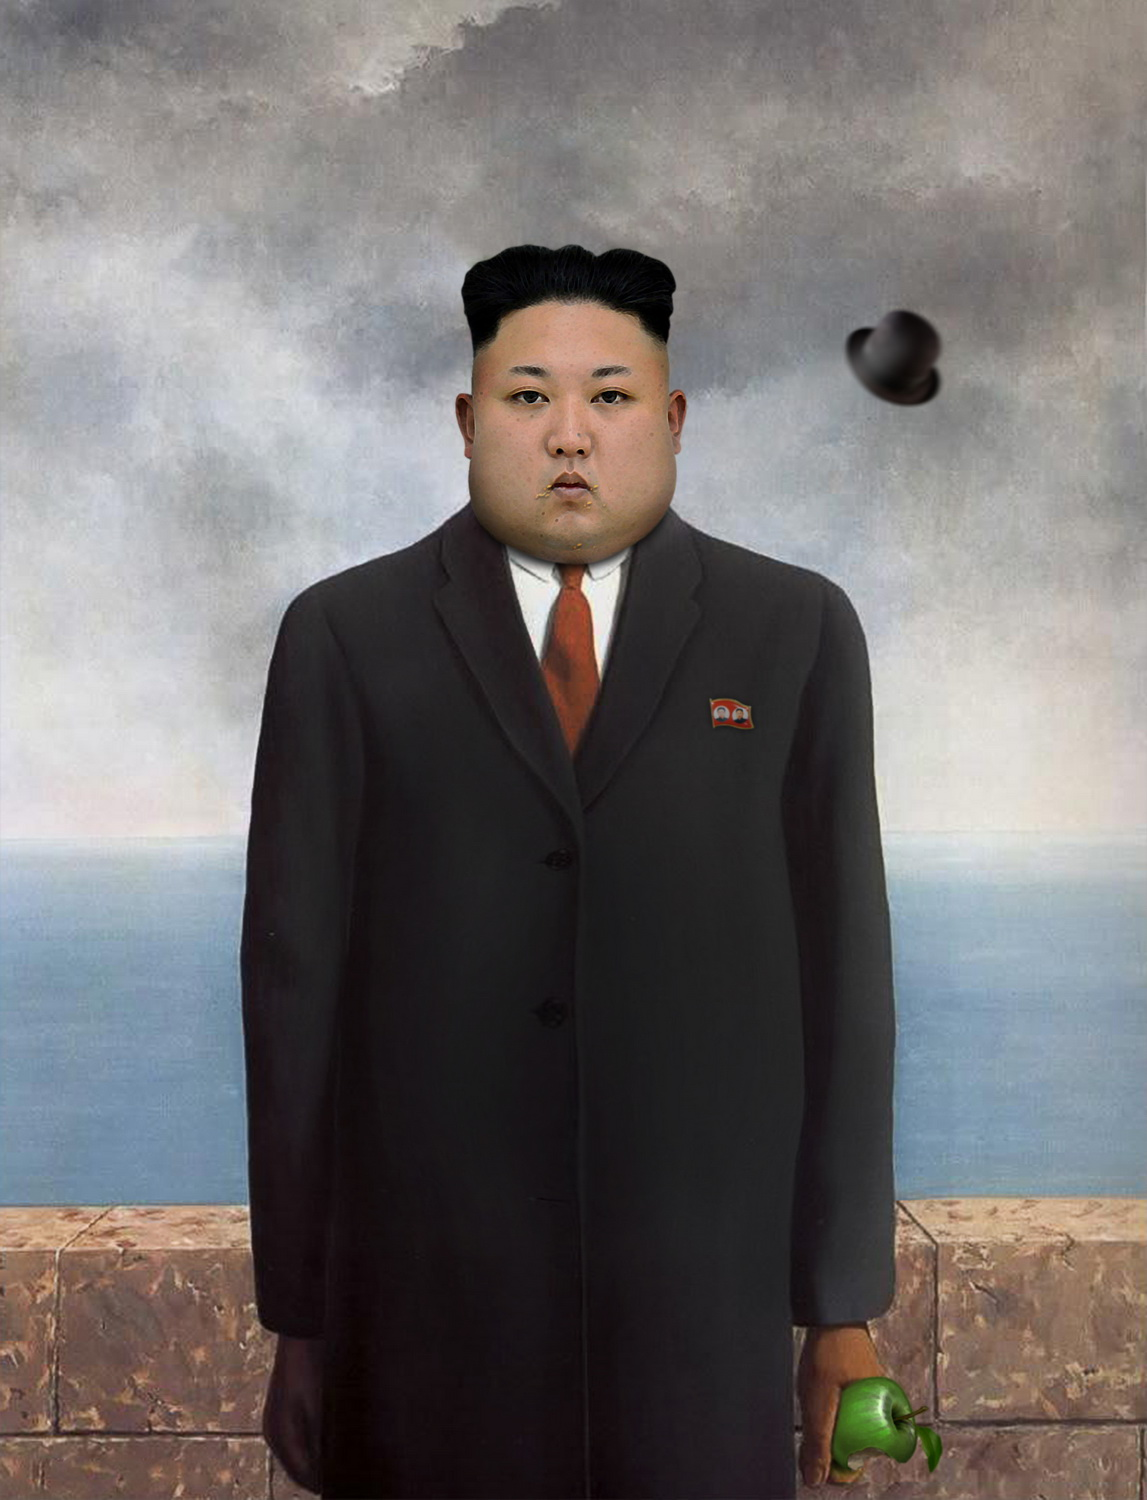 Kim Jong Un - The Son of Man